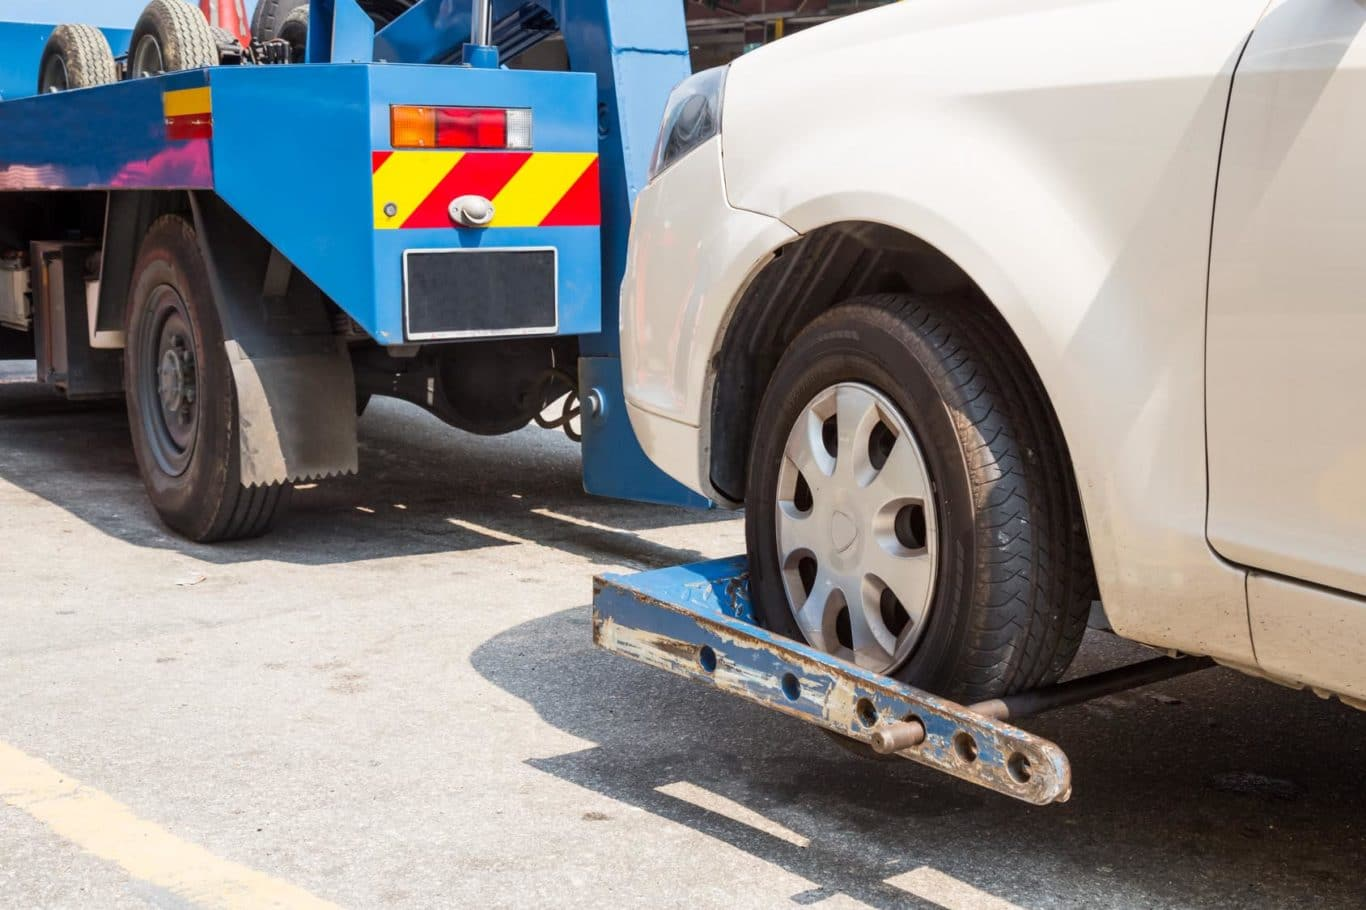 Gormanston, County Meath expert Car Towing services